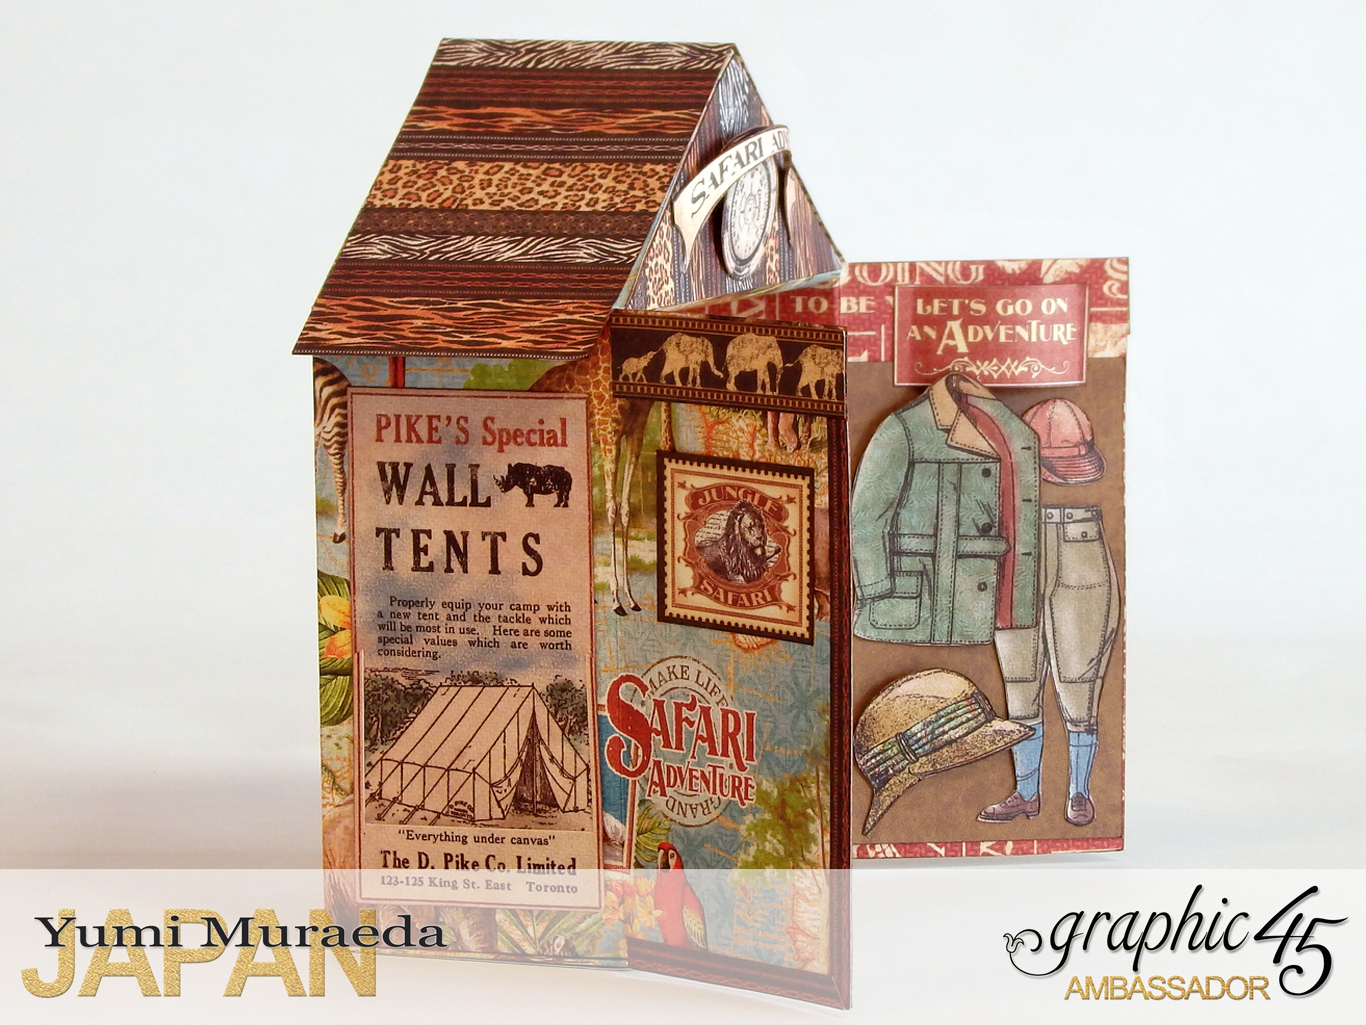 5Safari Park Ranger Office, Safari Adventure, by Yumi Muraeda, Product by Graphic 45jpg